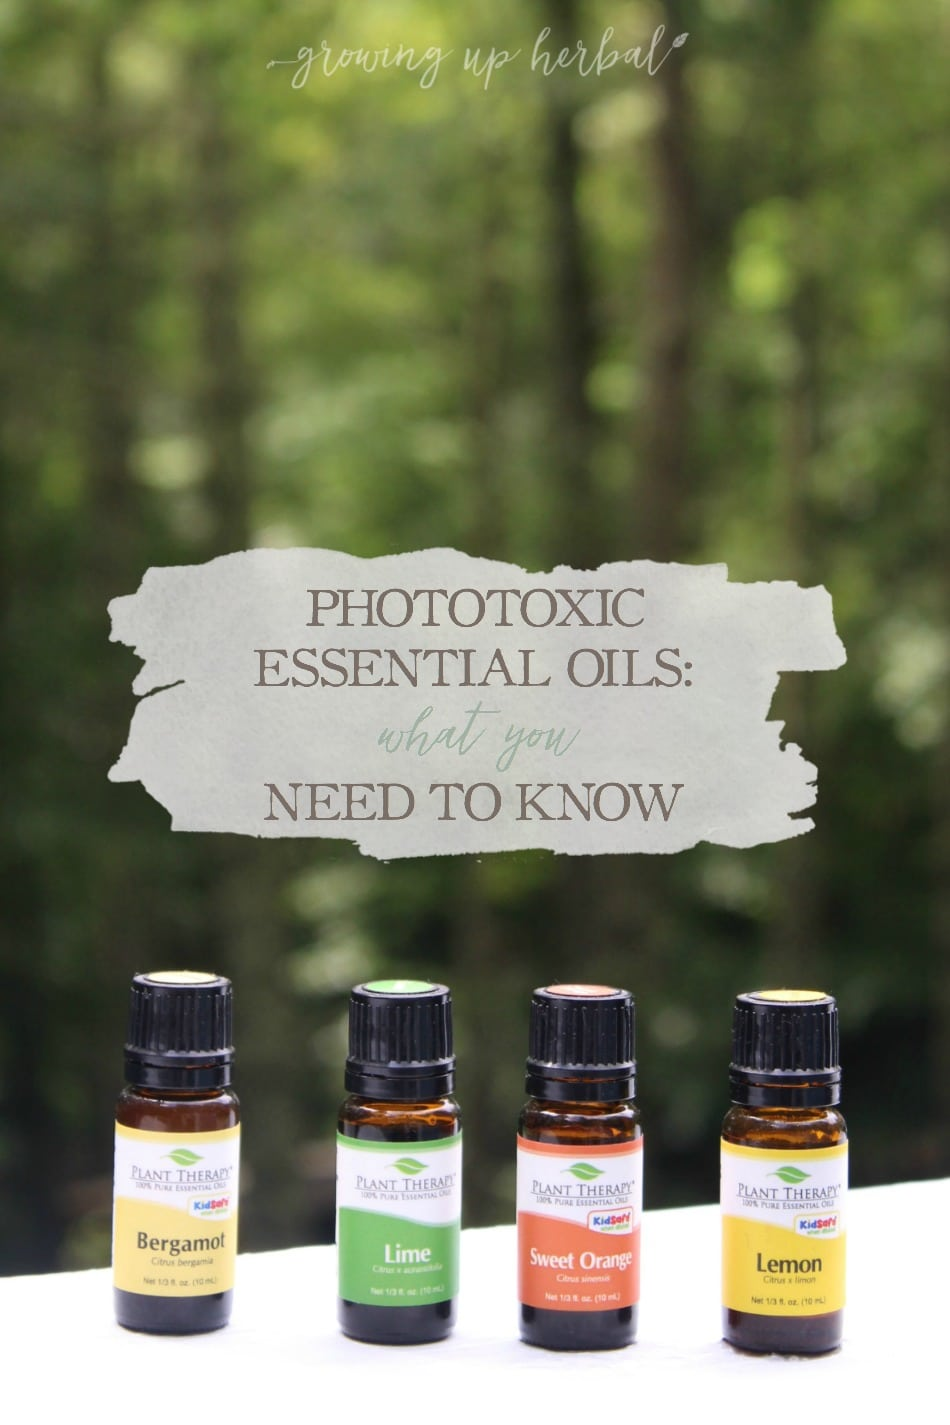 Phototoxic Essential Oils: What You Need To Know